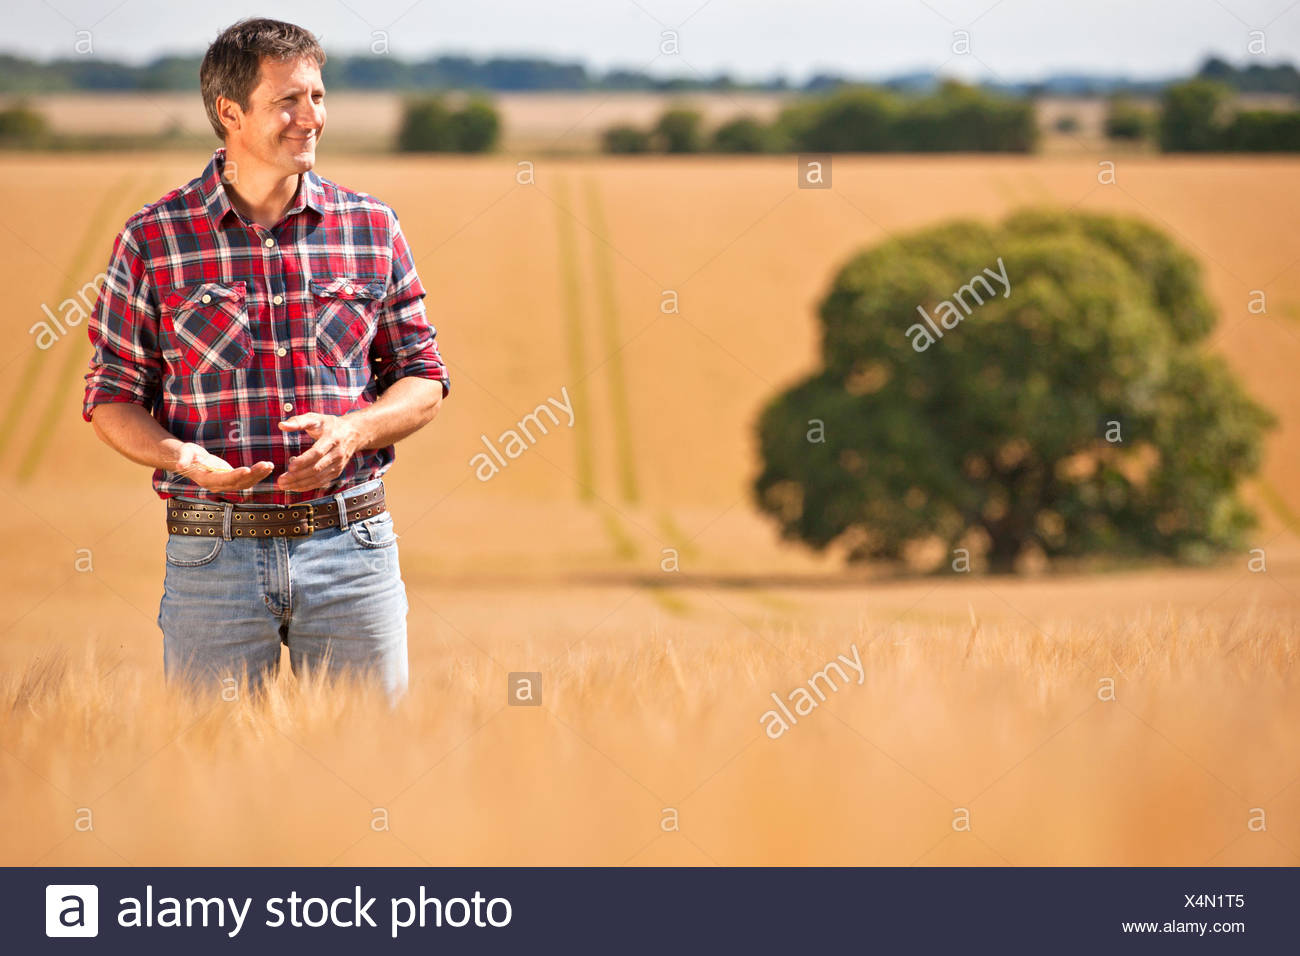 Farmer looking away in sunny rural barley crop field - Stock Image